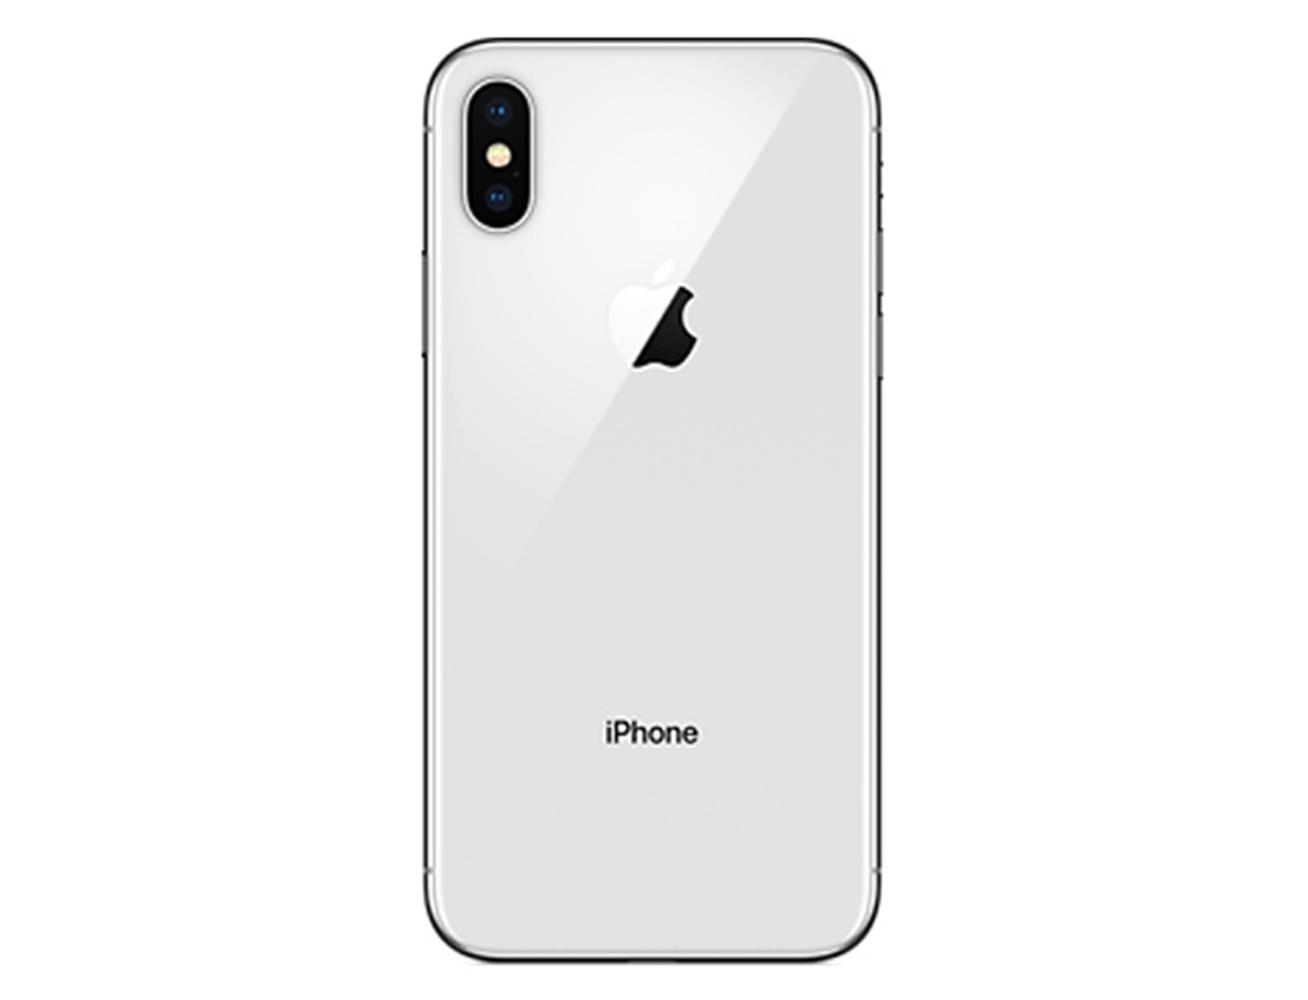 a8fcfa48dab ... Apple iPhone X 256GB - Silver